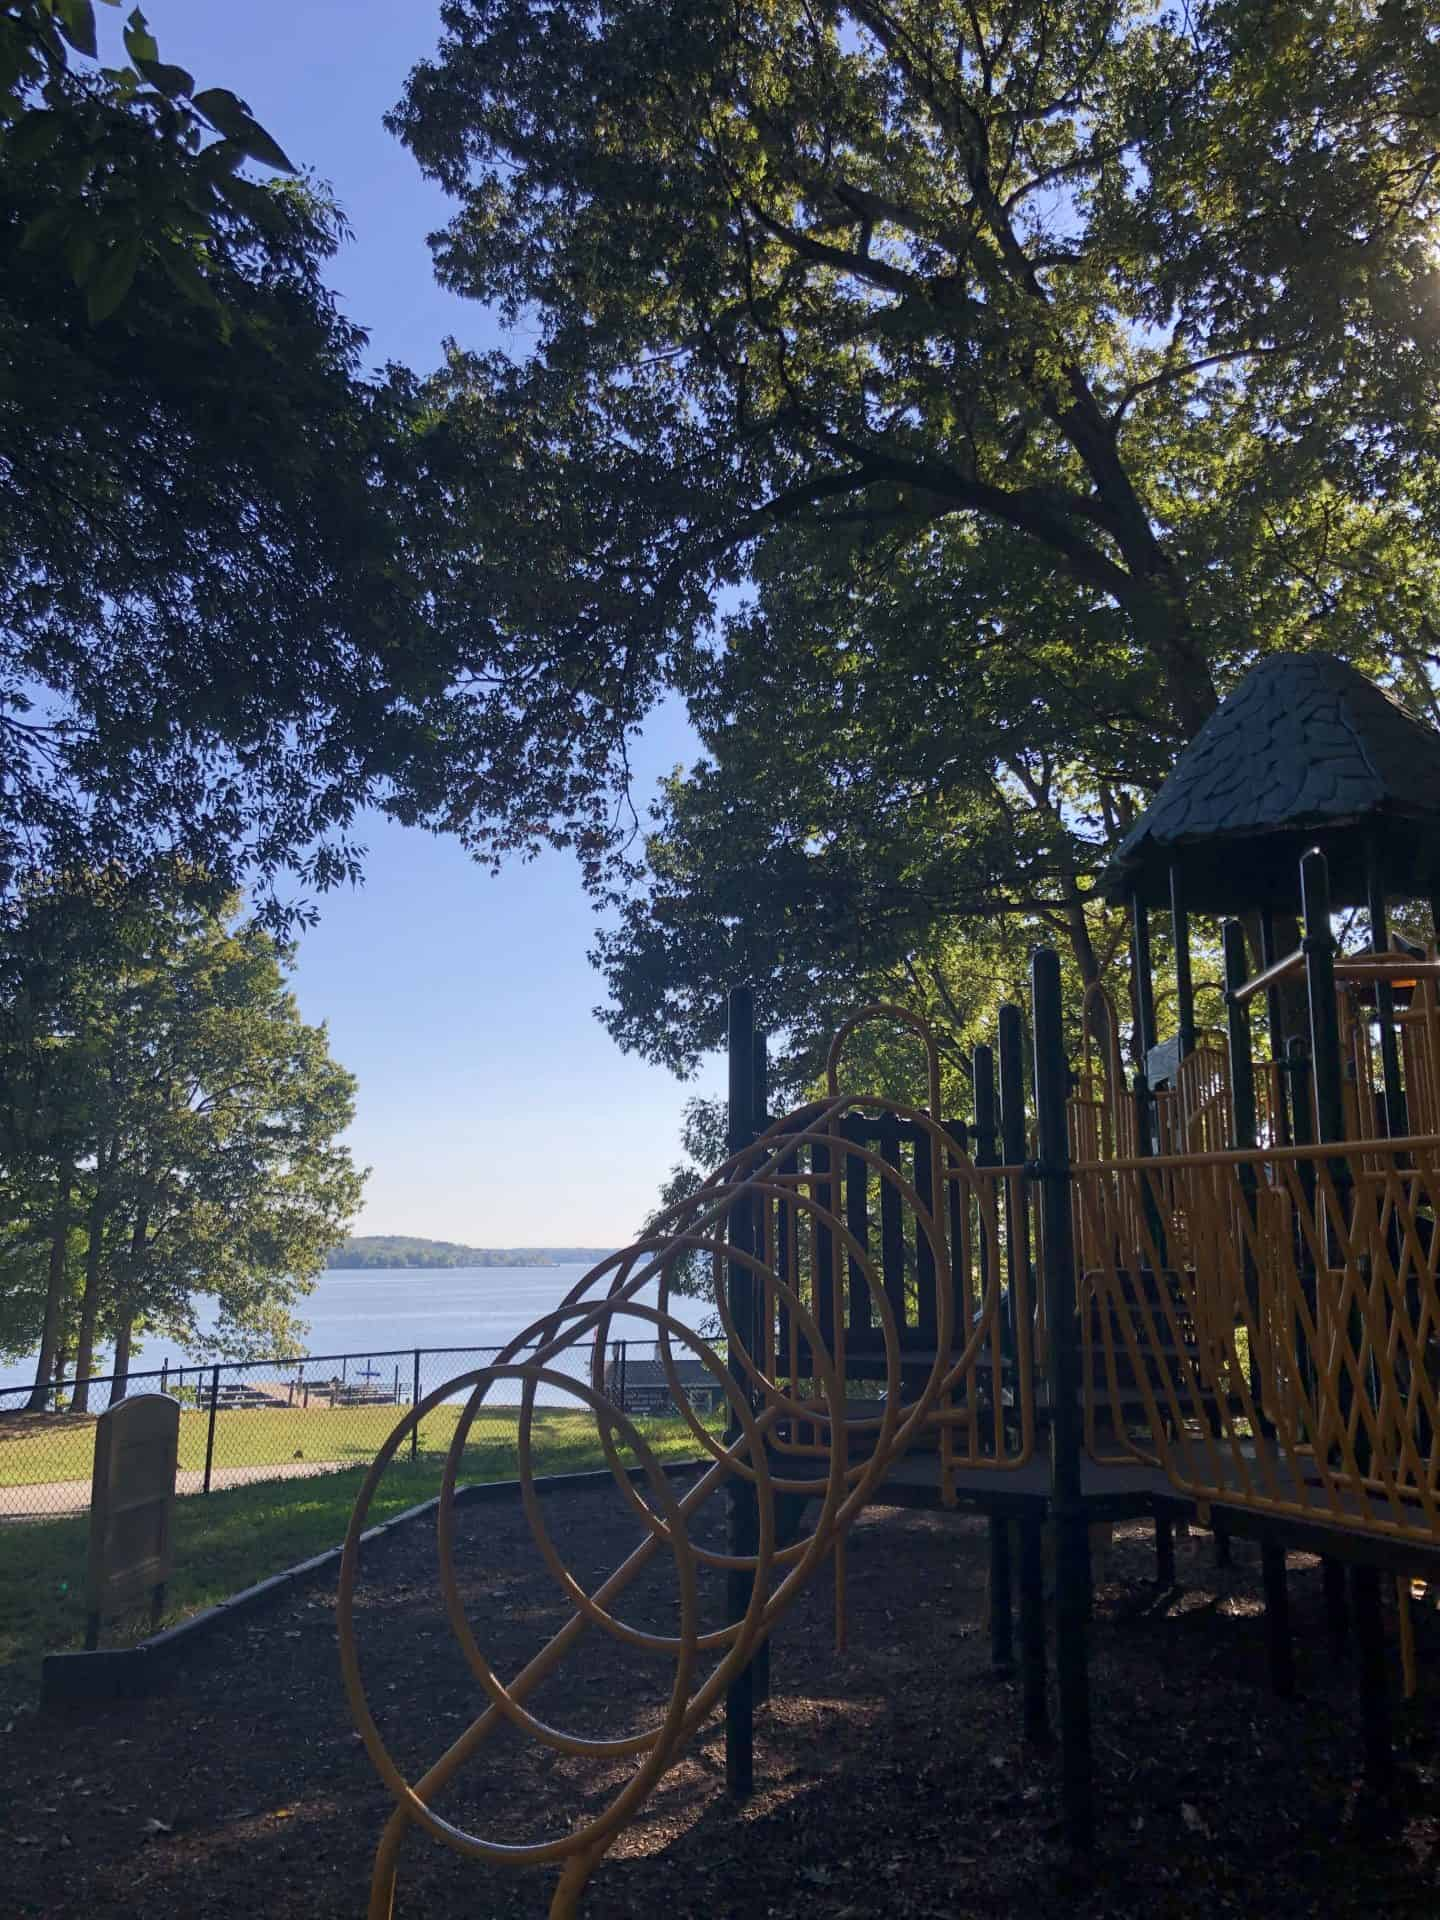 Playground with a View! - Pohick Bay Regional Park one of the best playgrounds in Northern VA